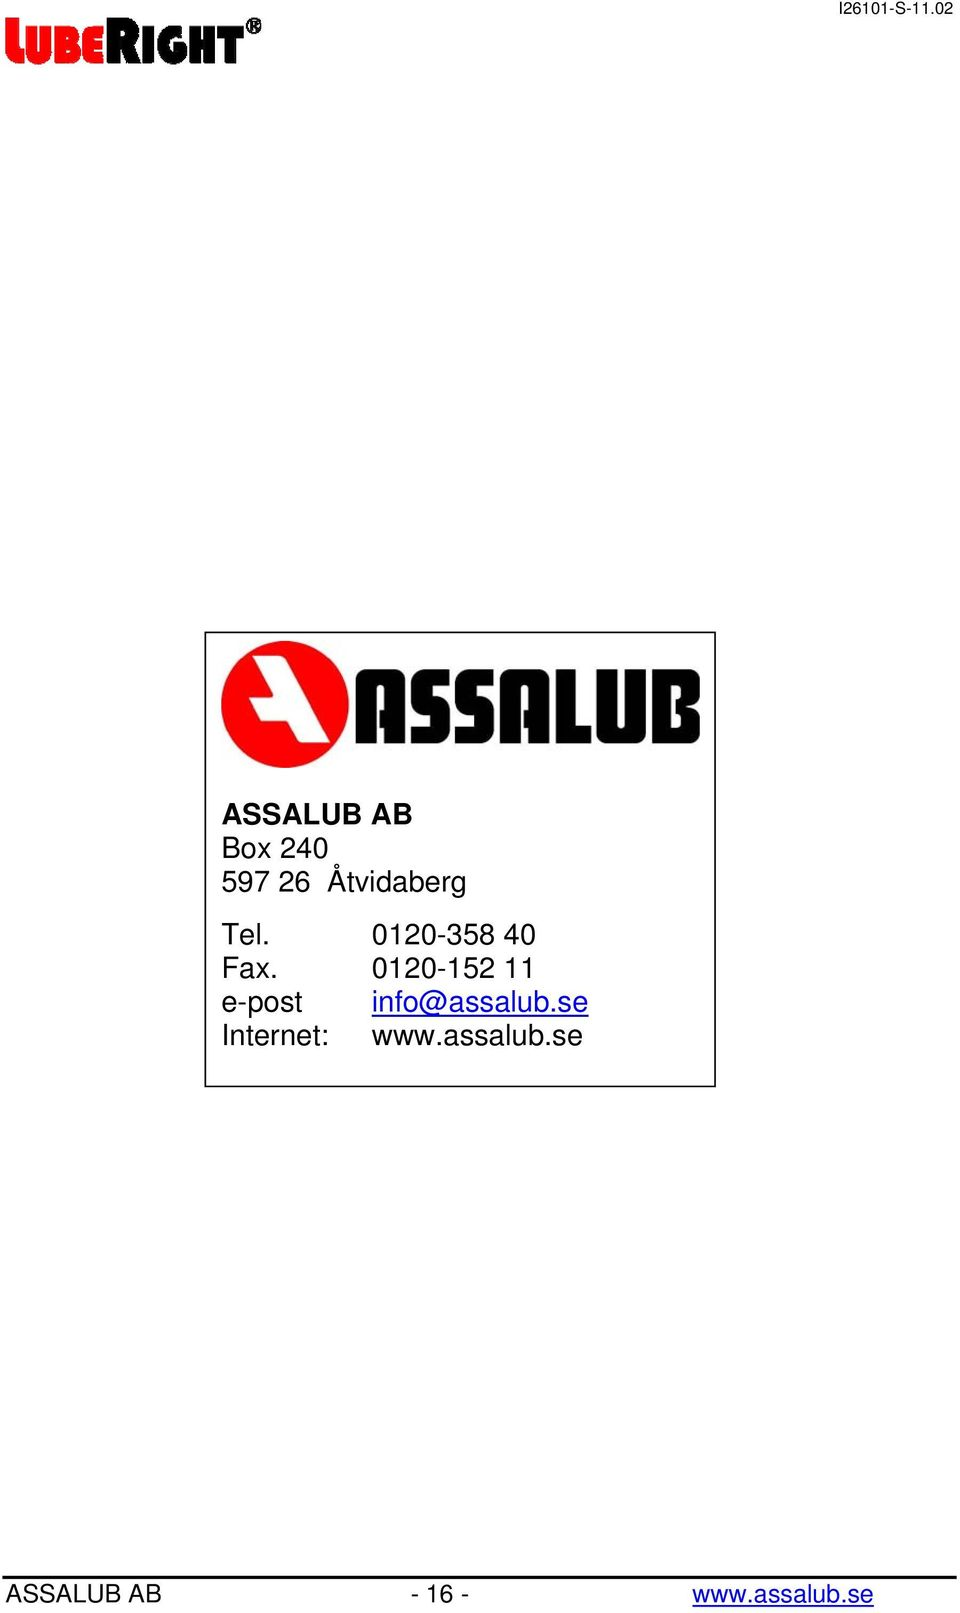 0120-152 11 e-post info@assalub.